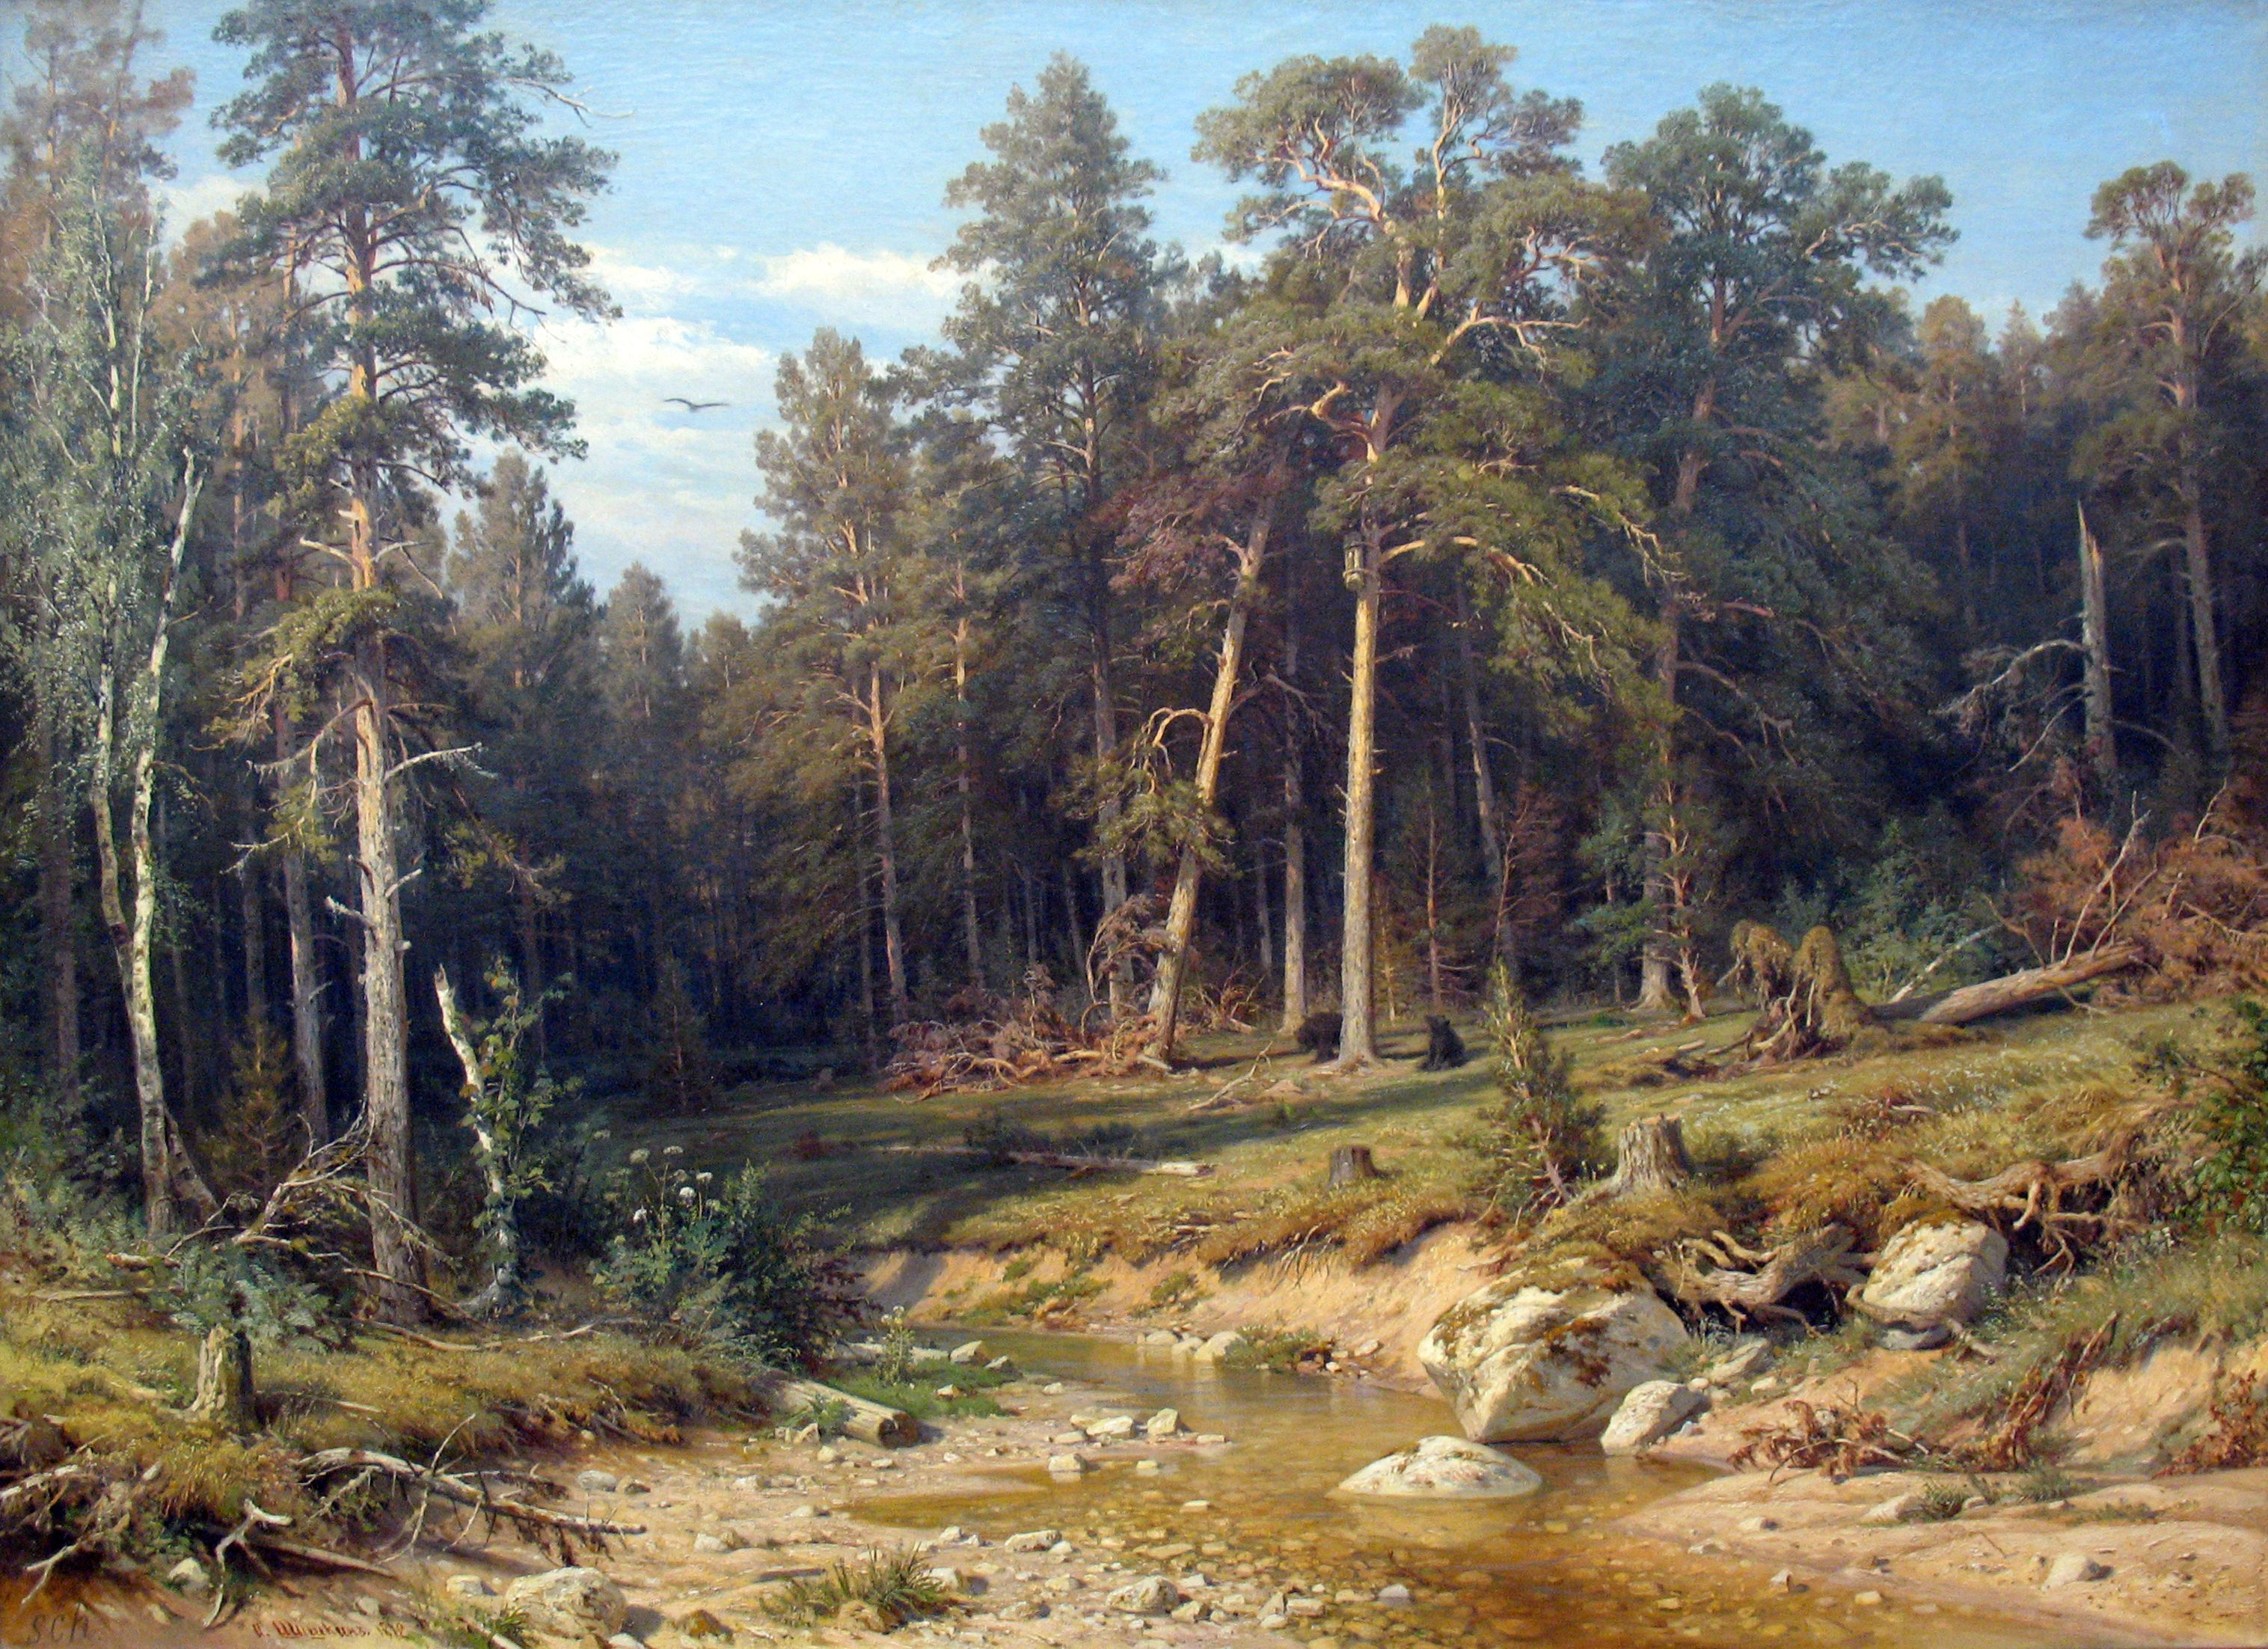 top scoring links : Art | 1 | Pinterest | Wald